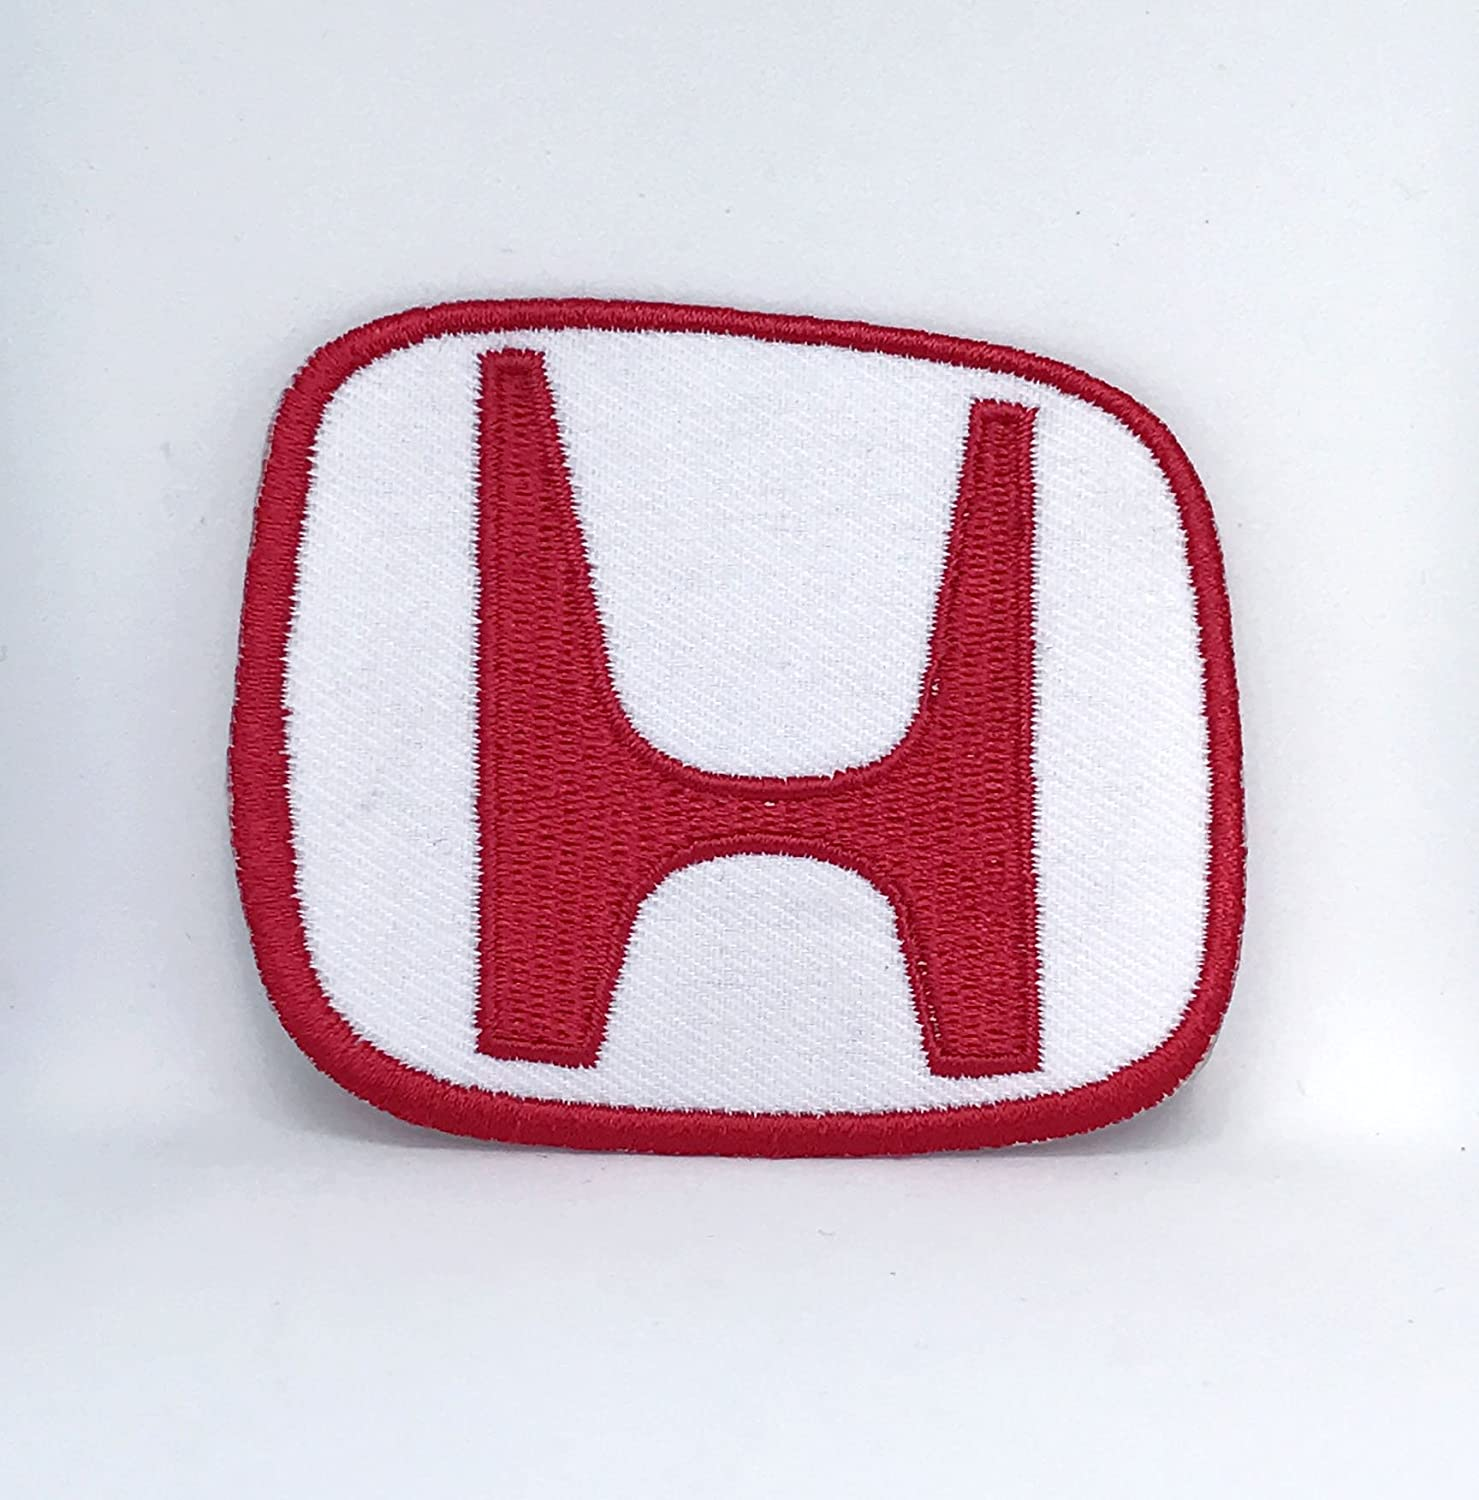 HRC HONDA  RACING   Logo Embroidery Iron,sewing,patch on Clothes